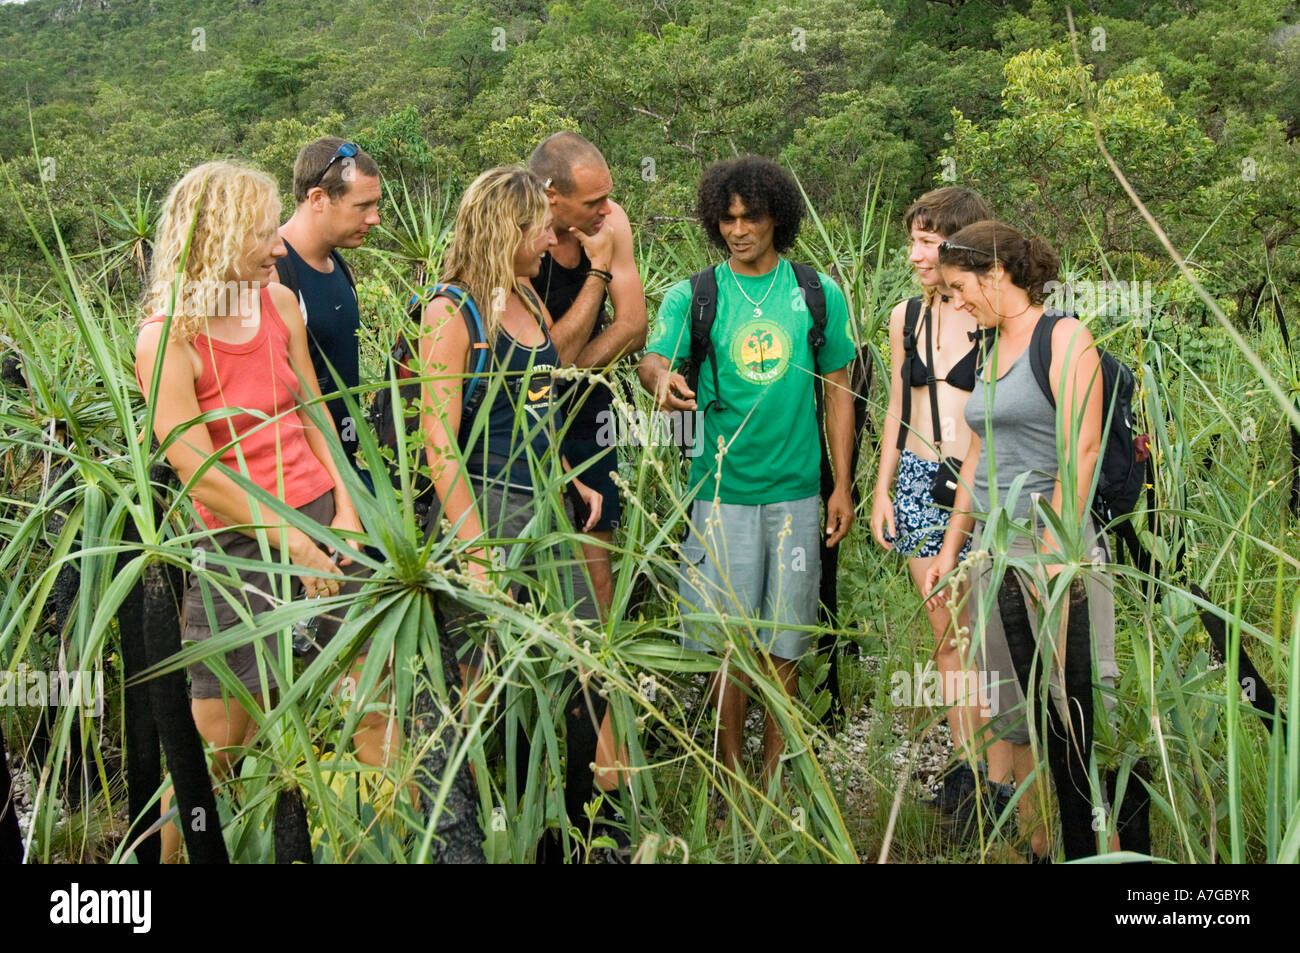 A guide explains about the flora and fauna to group of tourists in The Chapada dos Veadeiros National Park of Brazil. - Stock Image